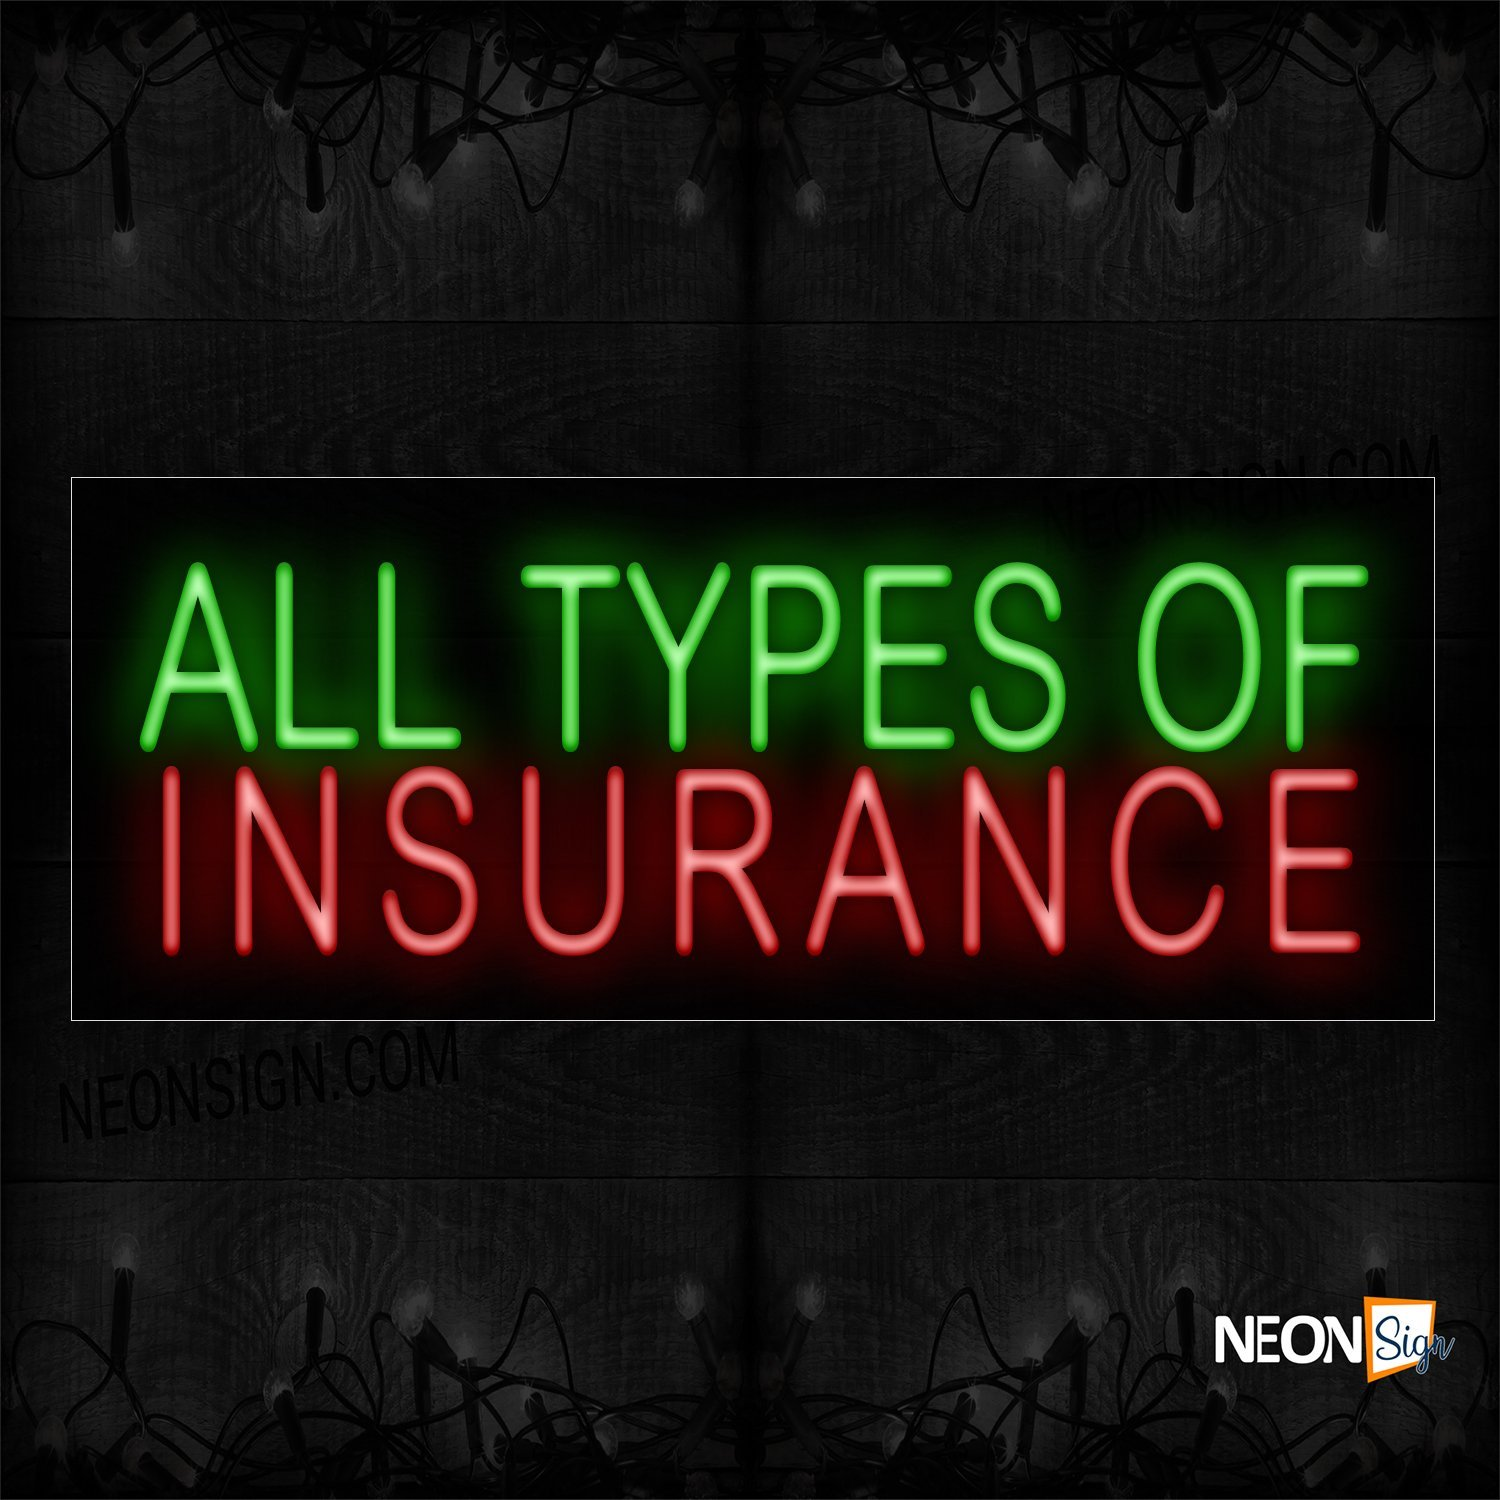 Image of 11348 All Types Of Insurance Neon Sign_13x32 Black Backing